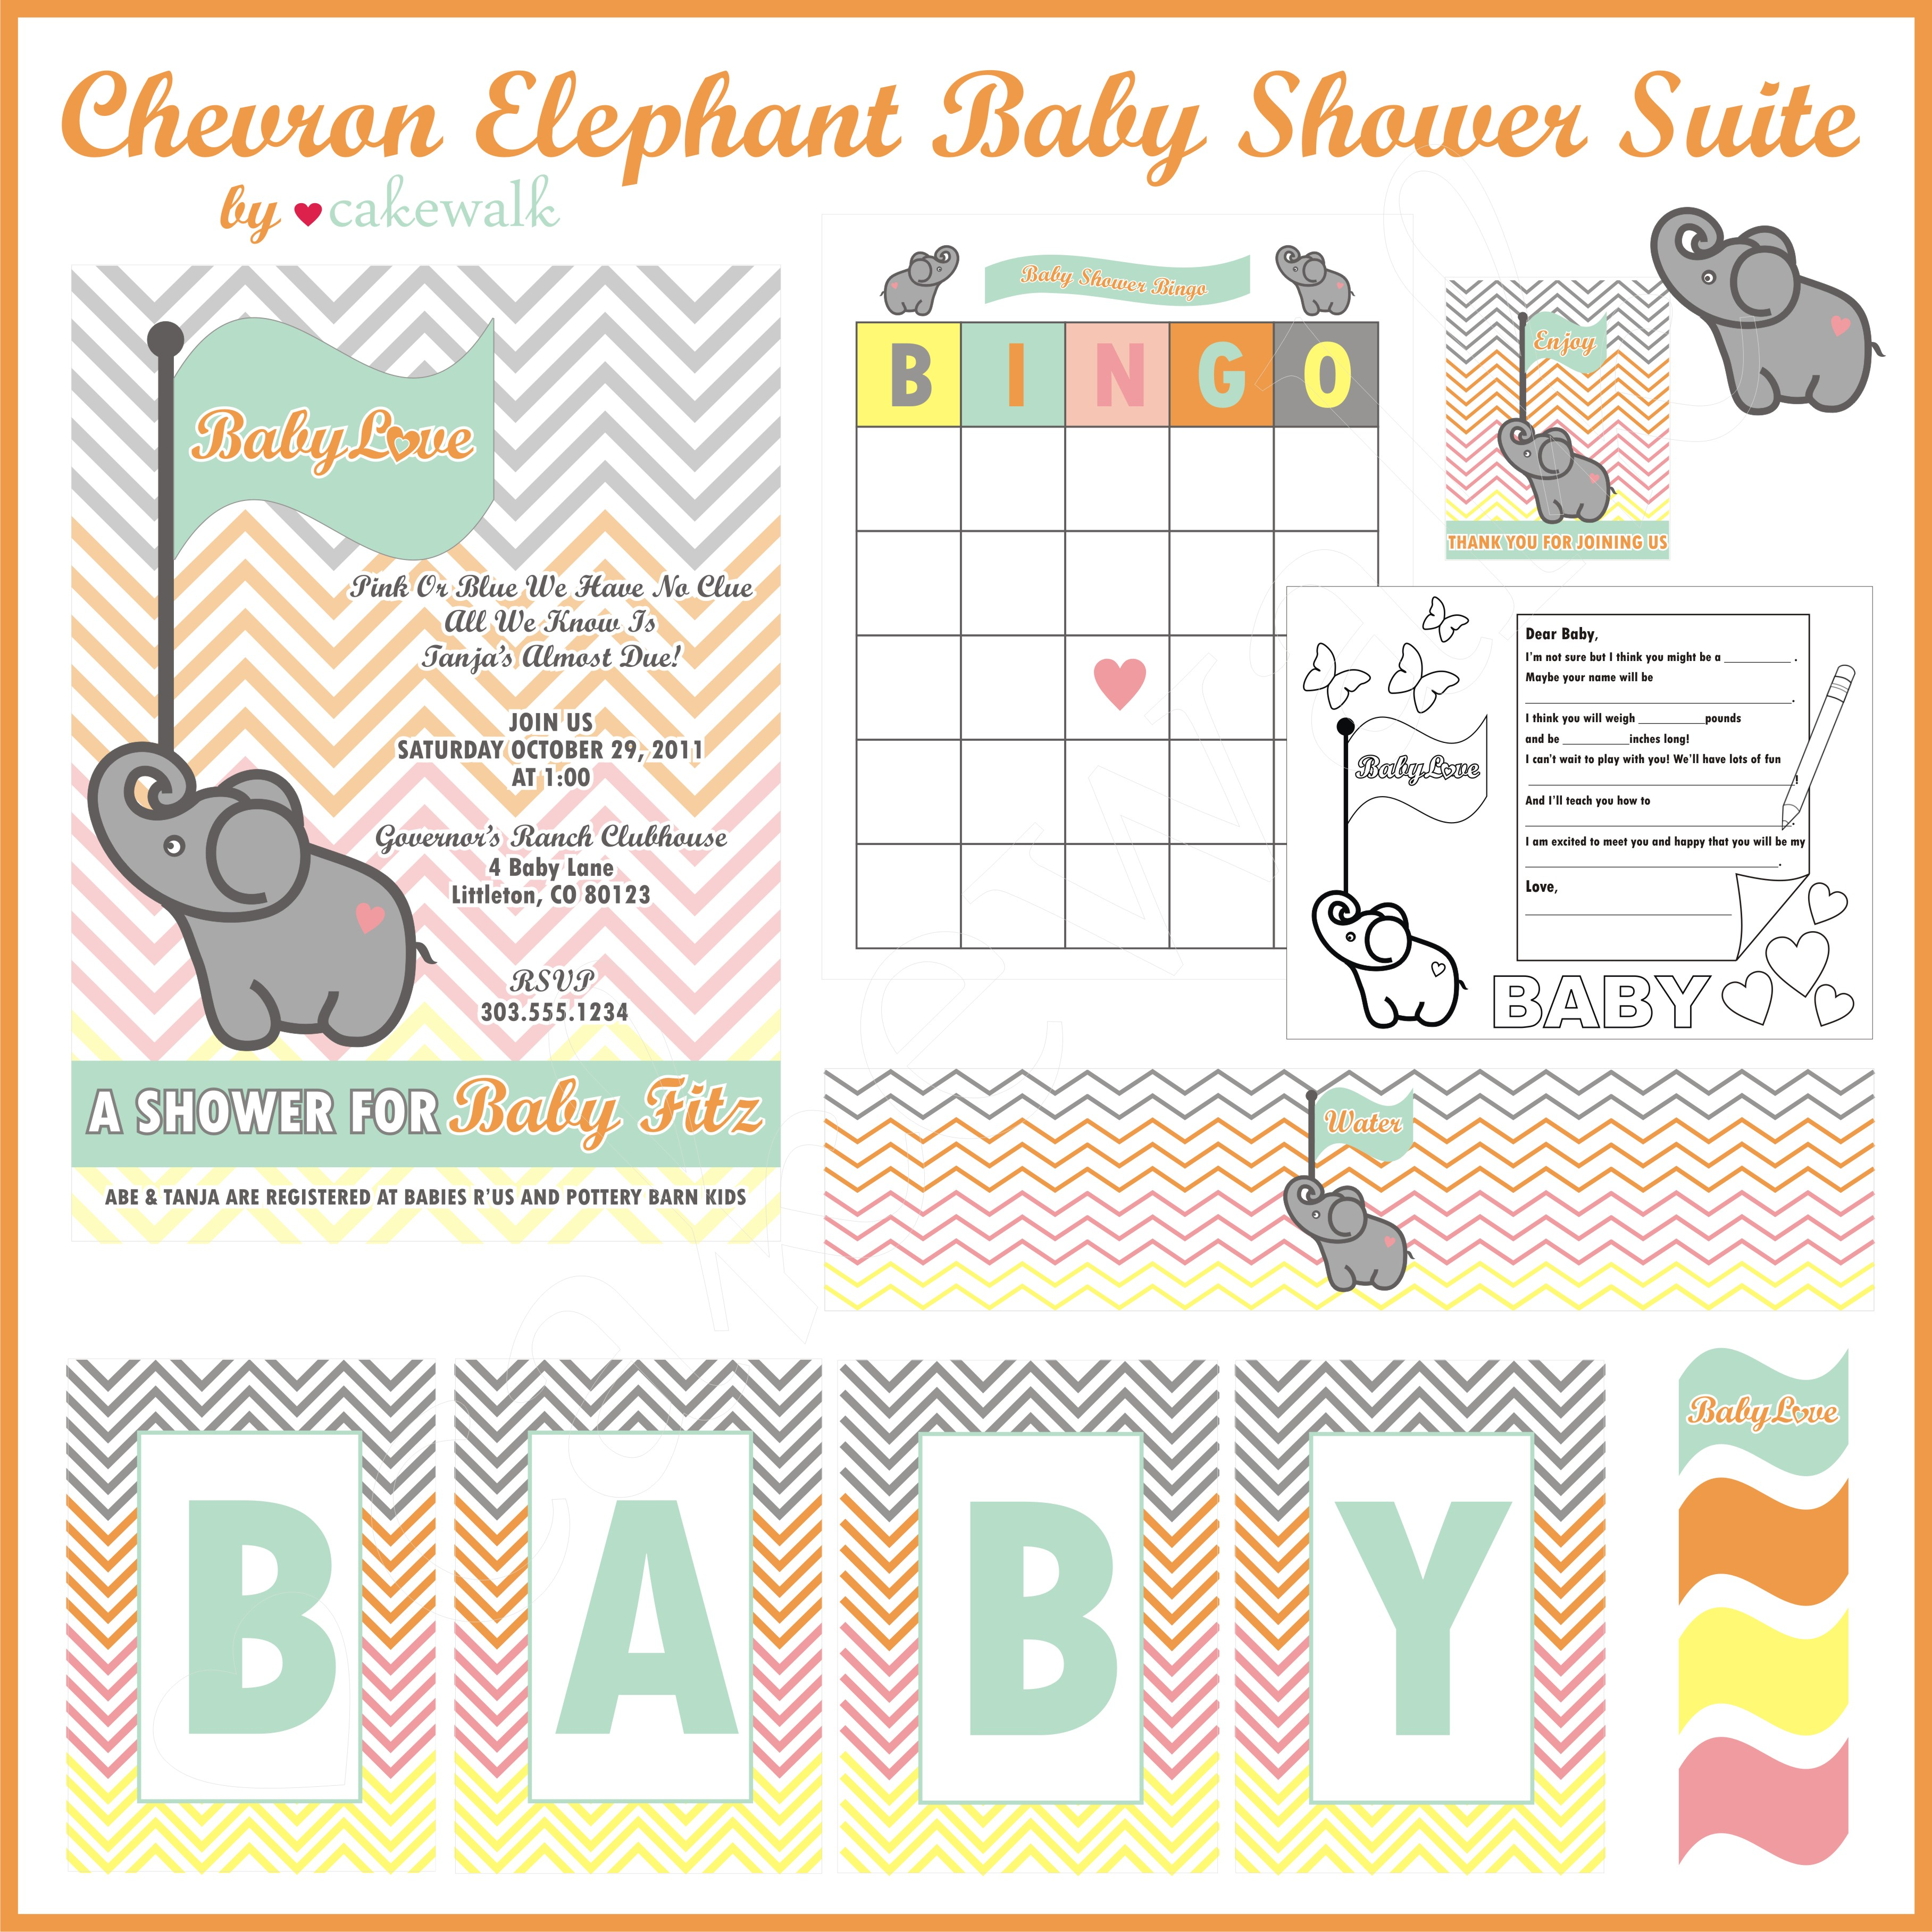 Favorite Is The Chevron Elephant Baby Shower Printable Suite Wallpaper